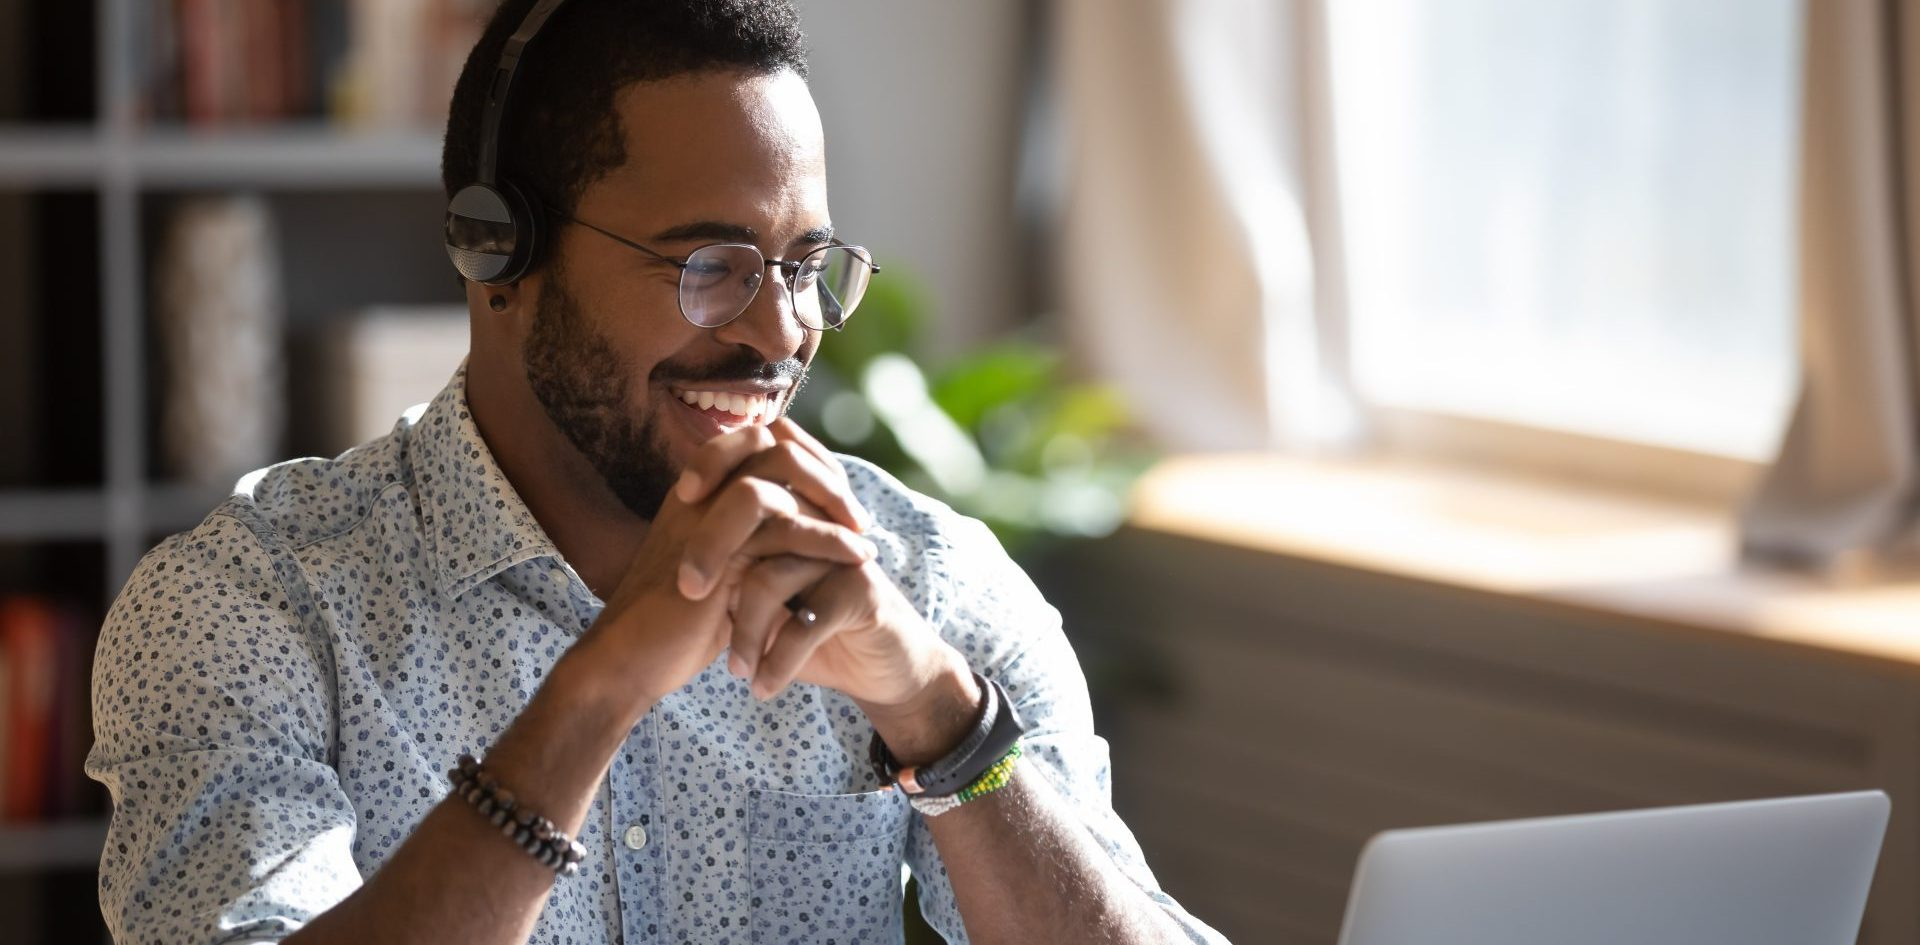 person with headphones on laughing